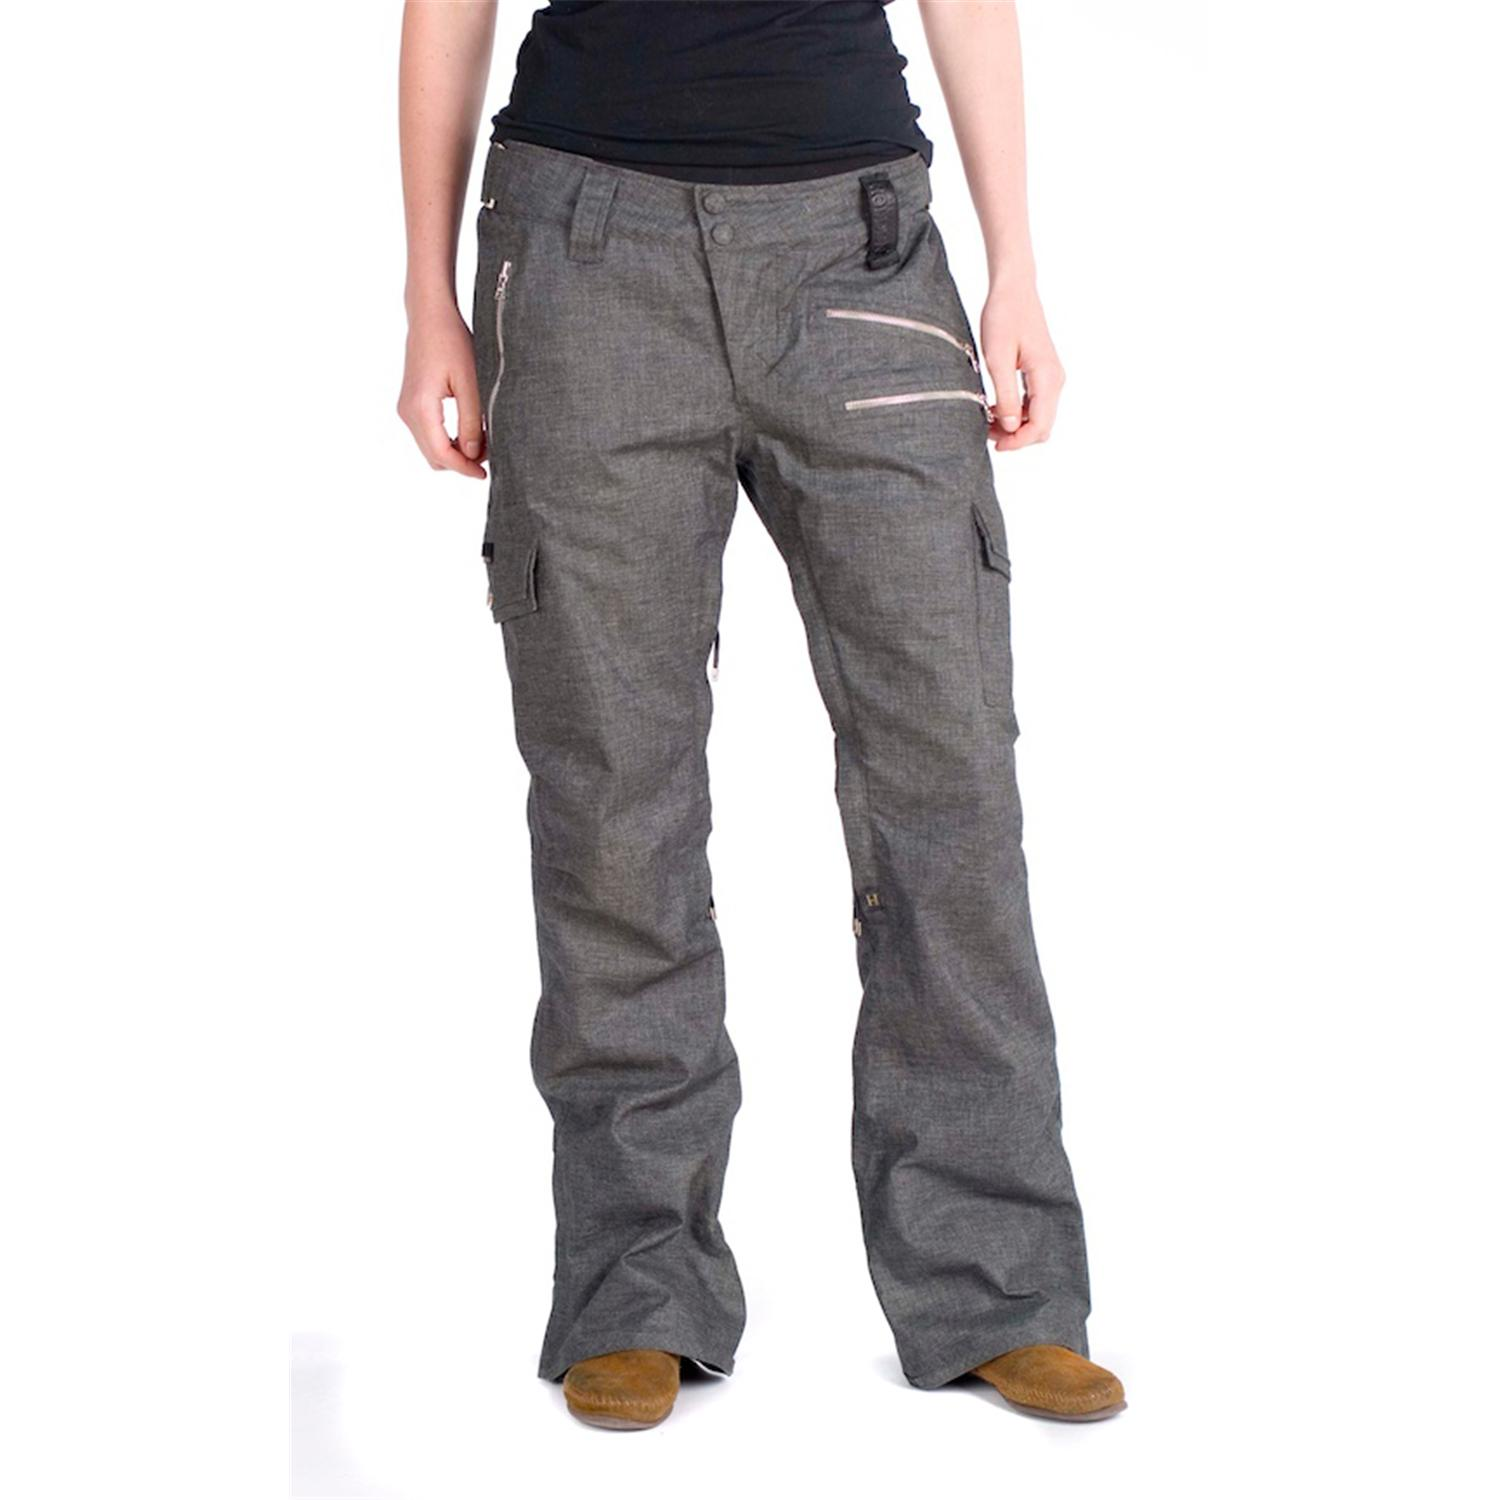 Lastest Black Cargo Pants For Women